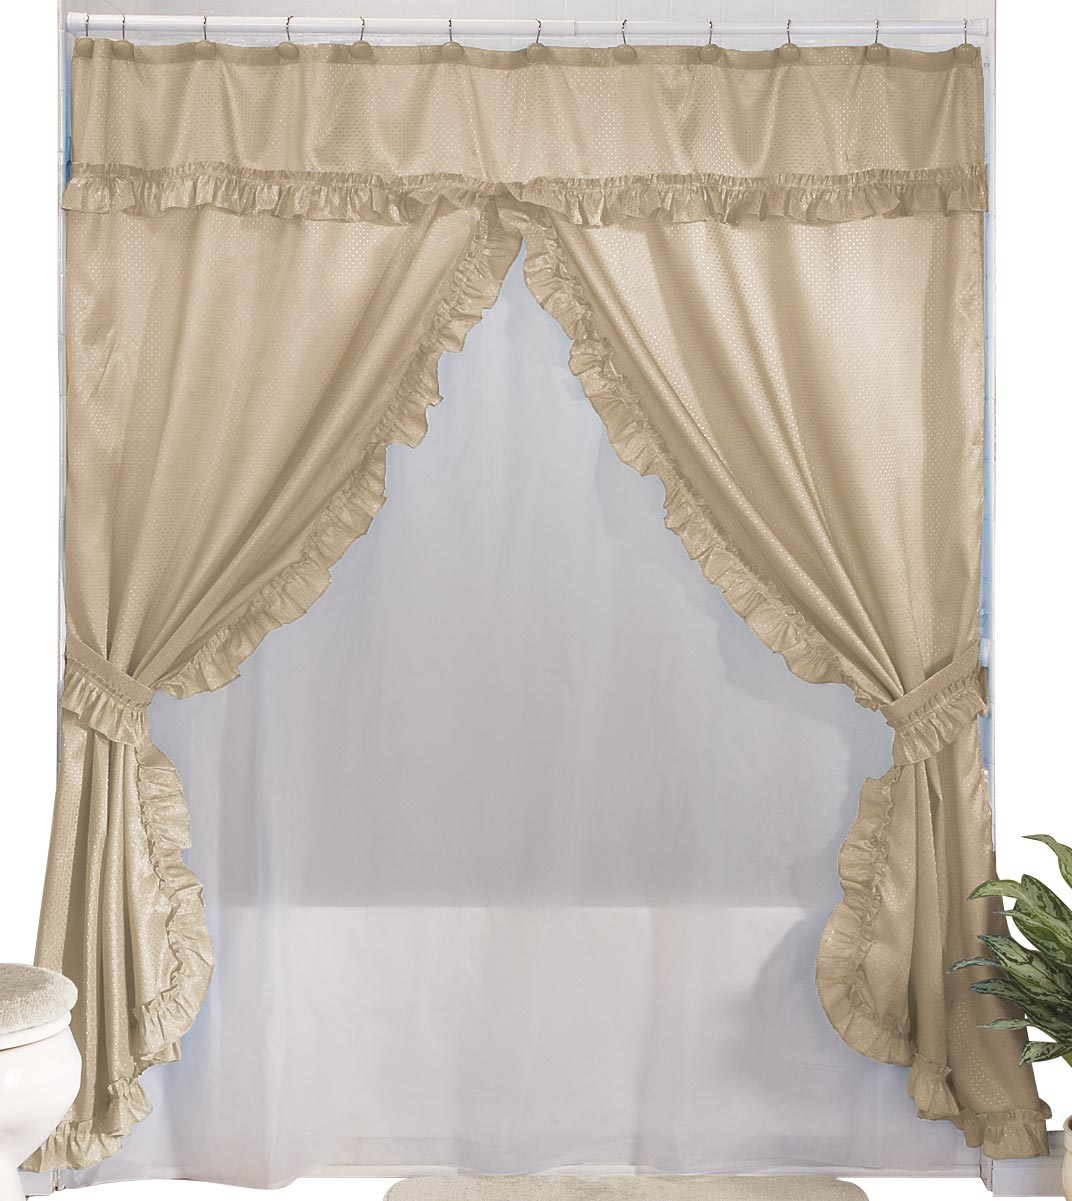 Double Swag Shower Curtain Foter Homemade Wall Decoration Ideas